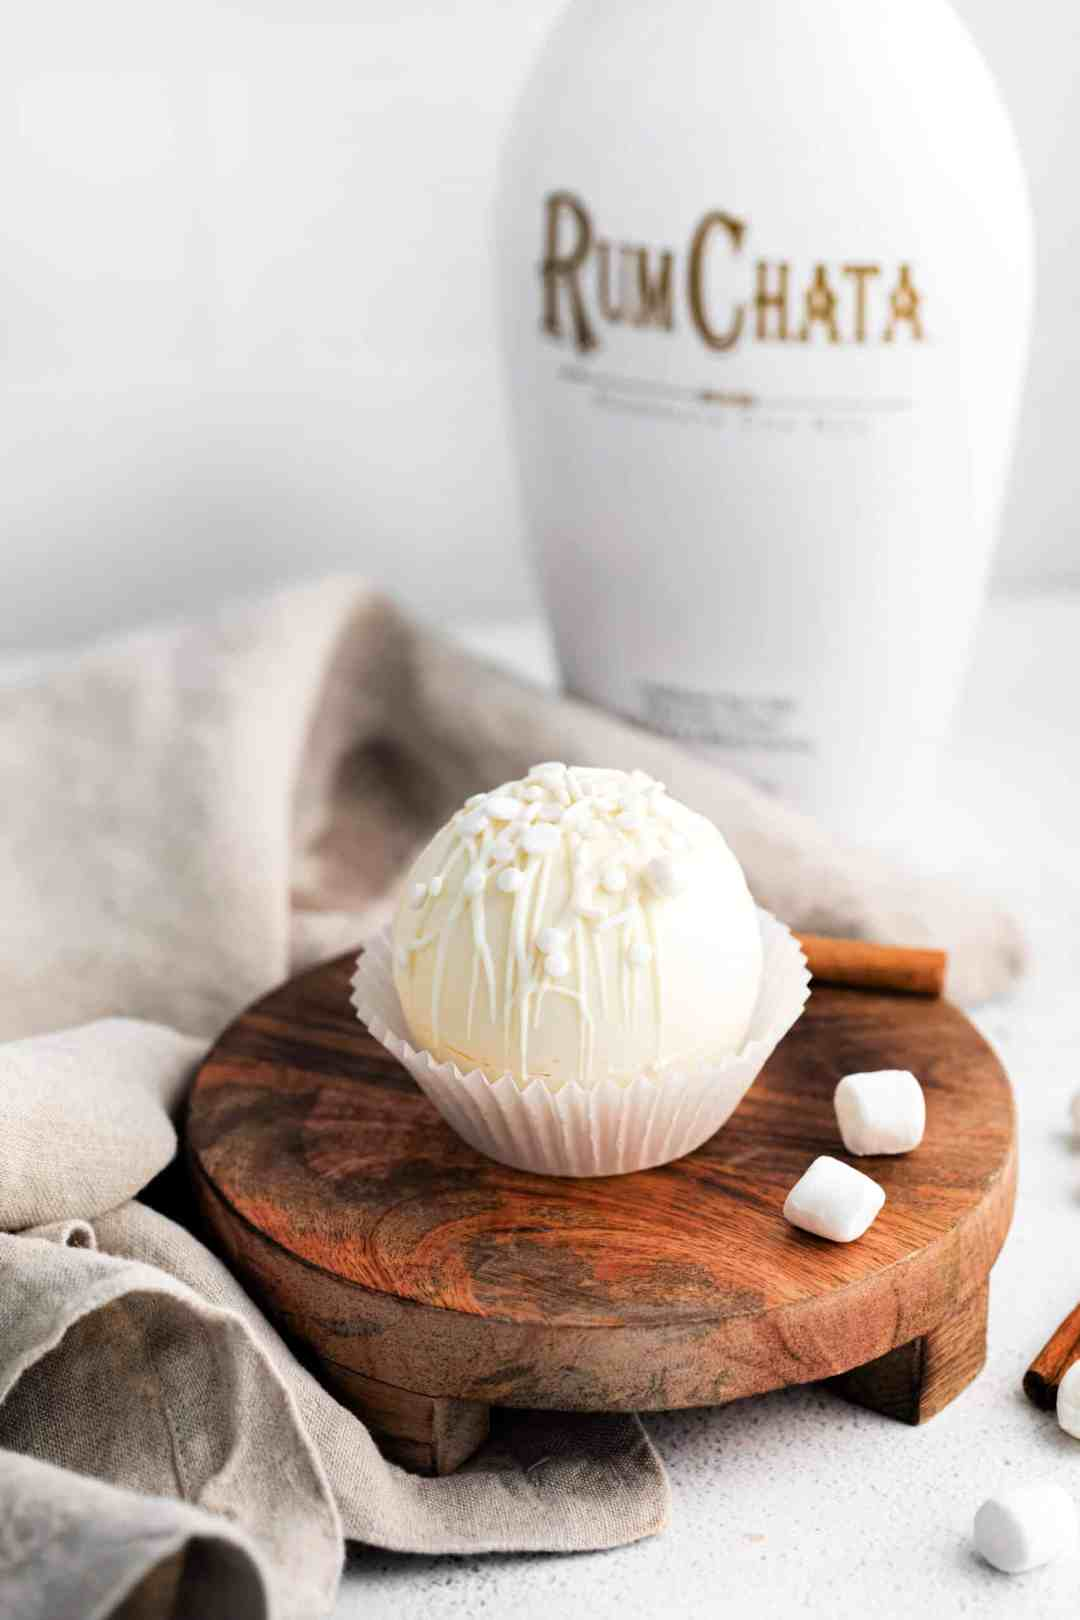 Learn how to make simple Rumchata cocoa bombs right at home #cocoabomb #hotcocoabomb